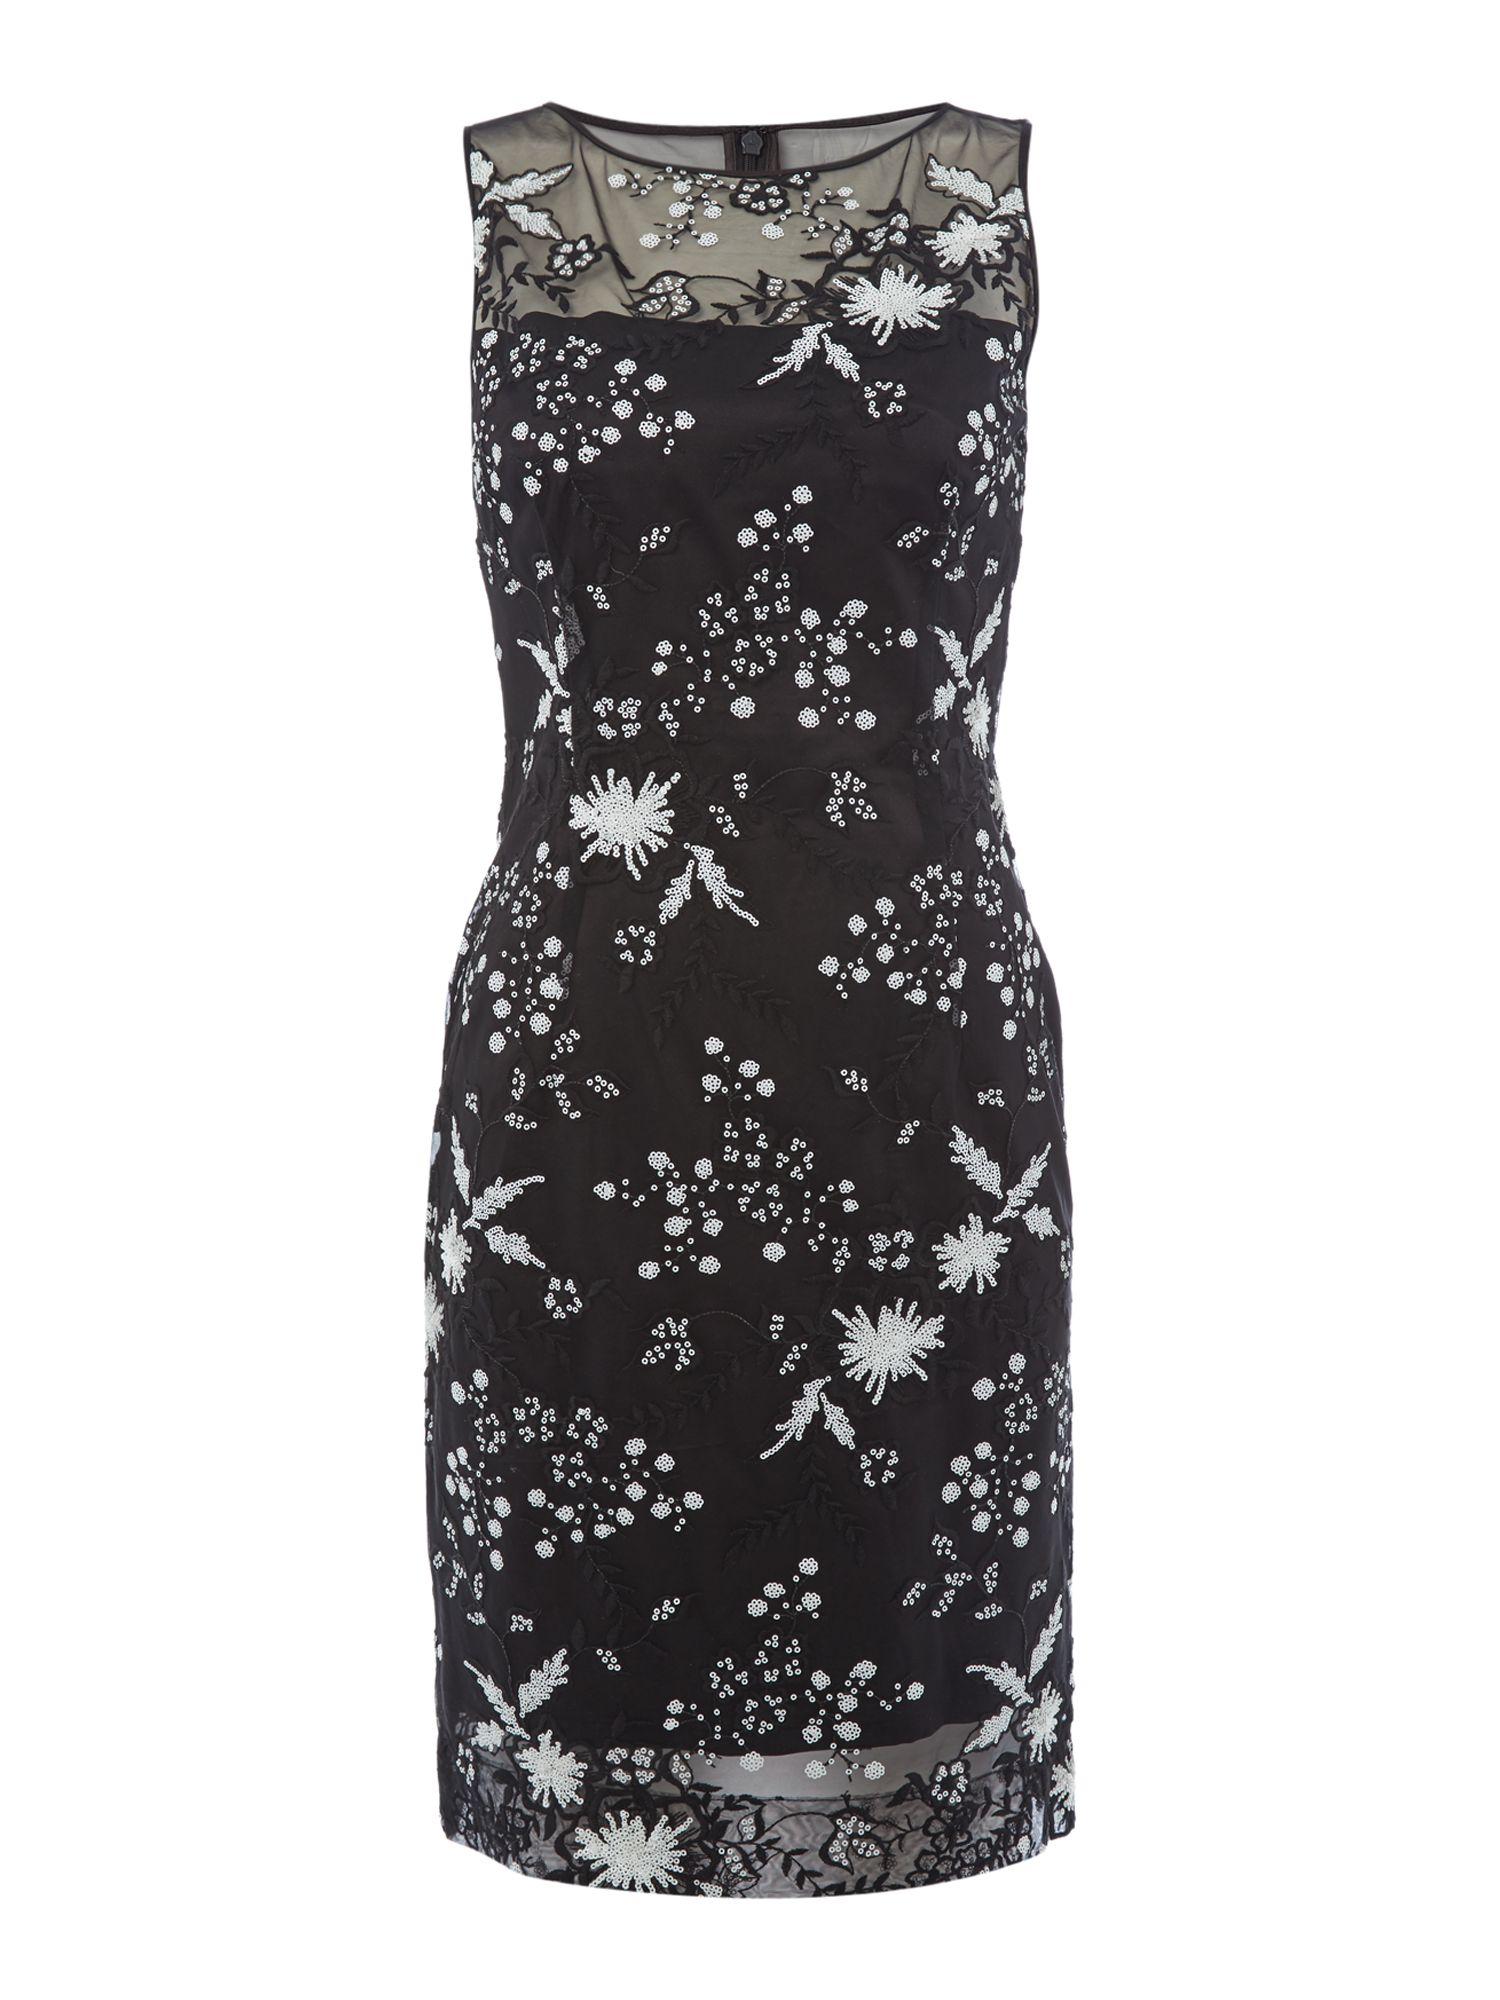 Tahari ASL Ilussion Sequin Embroidered Shift Dress, Black/White